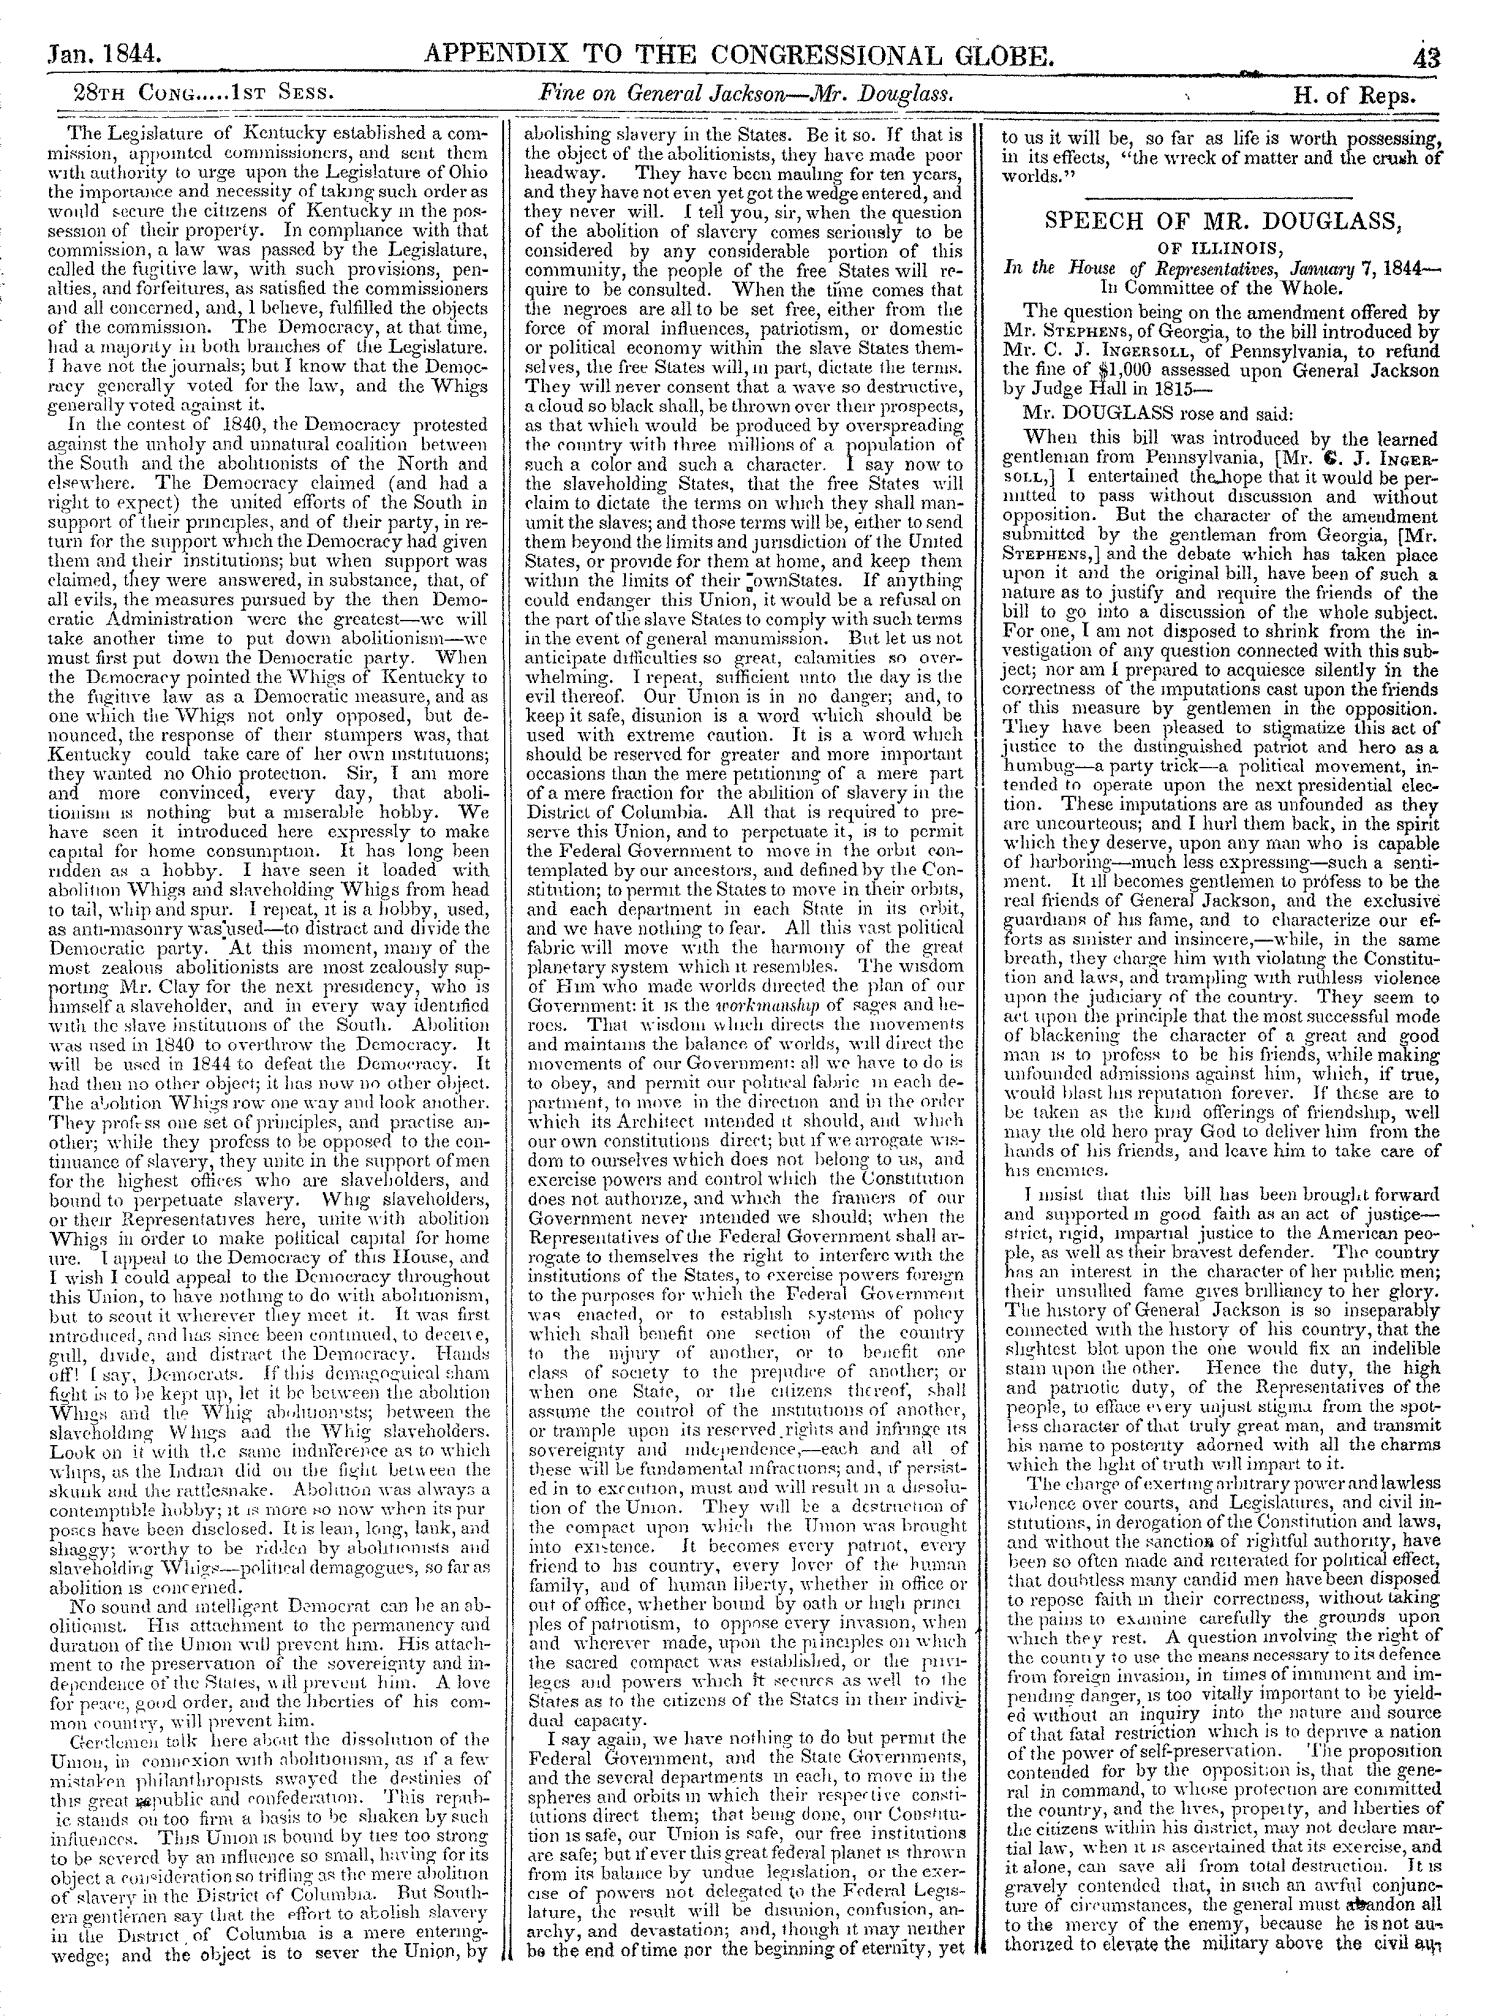 The Congressional Globe, Volume 13, Part 2: Twenty-Eighth Congress, First Session                                                                                                      43